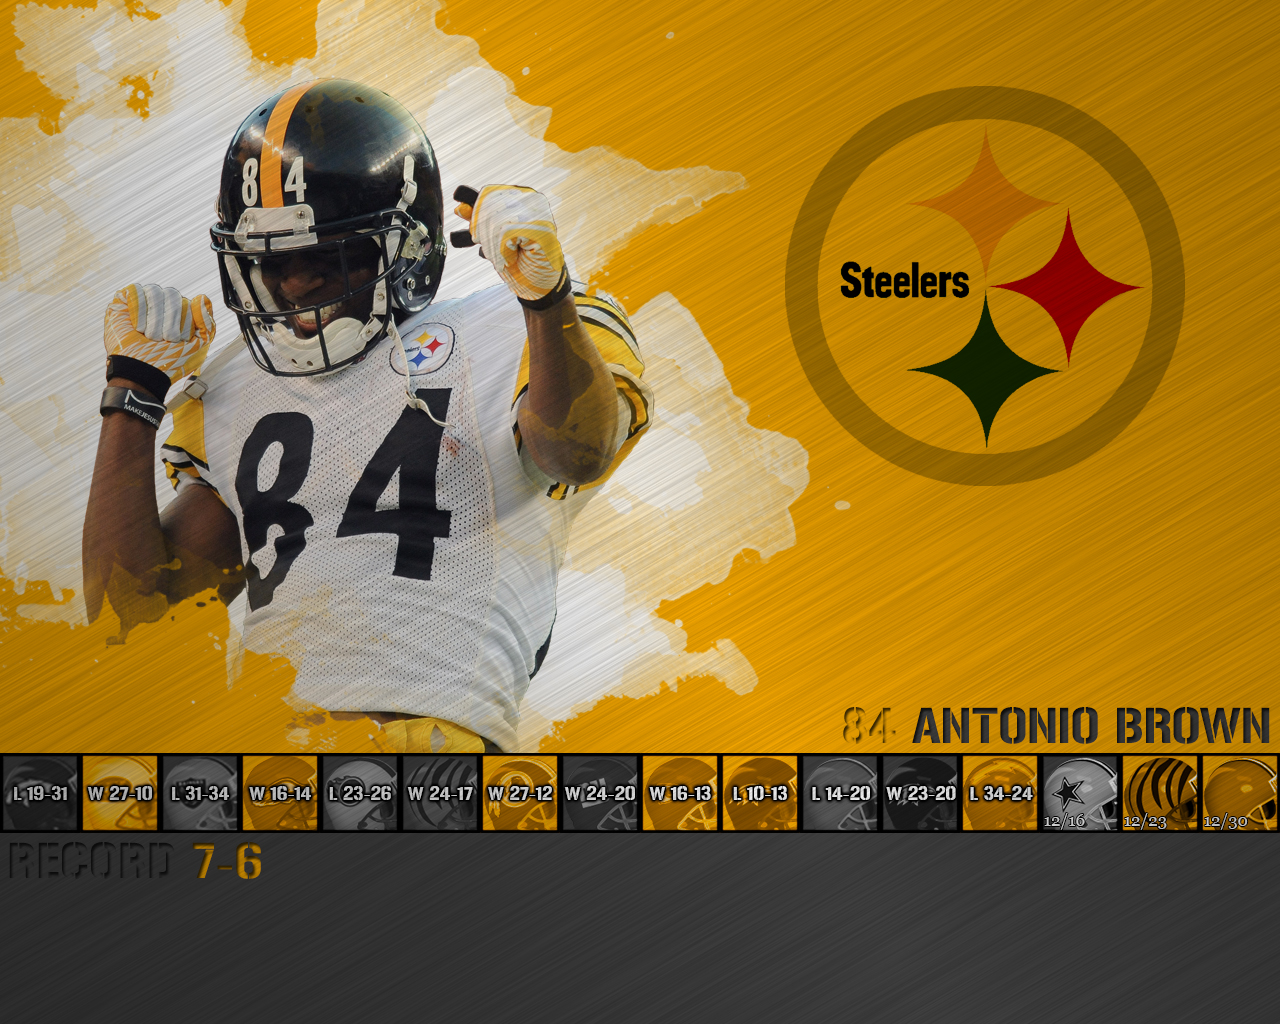 Antonio Brown 2012 Wallpaper 1280x1024